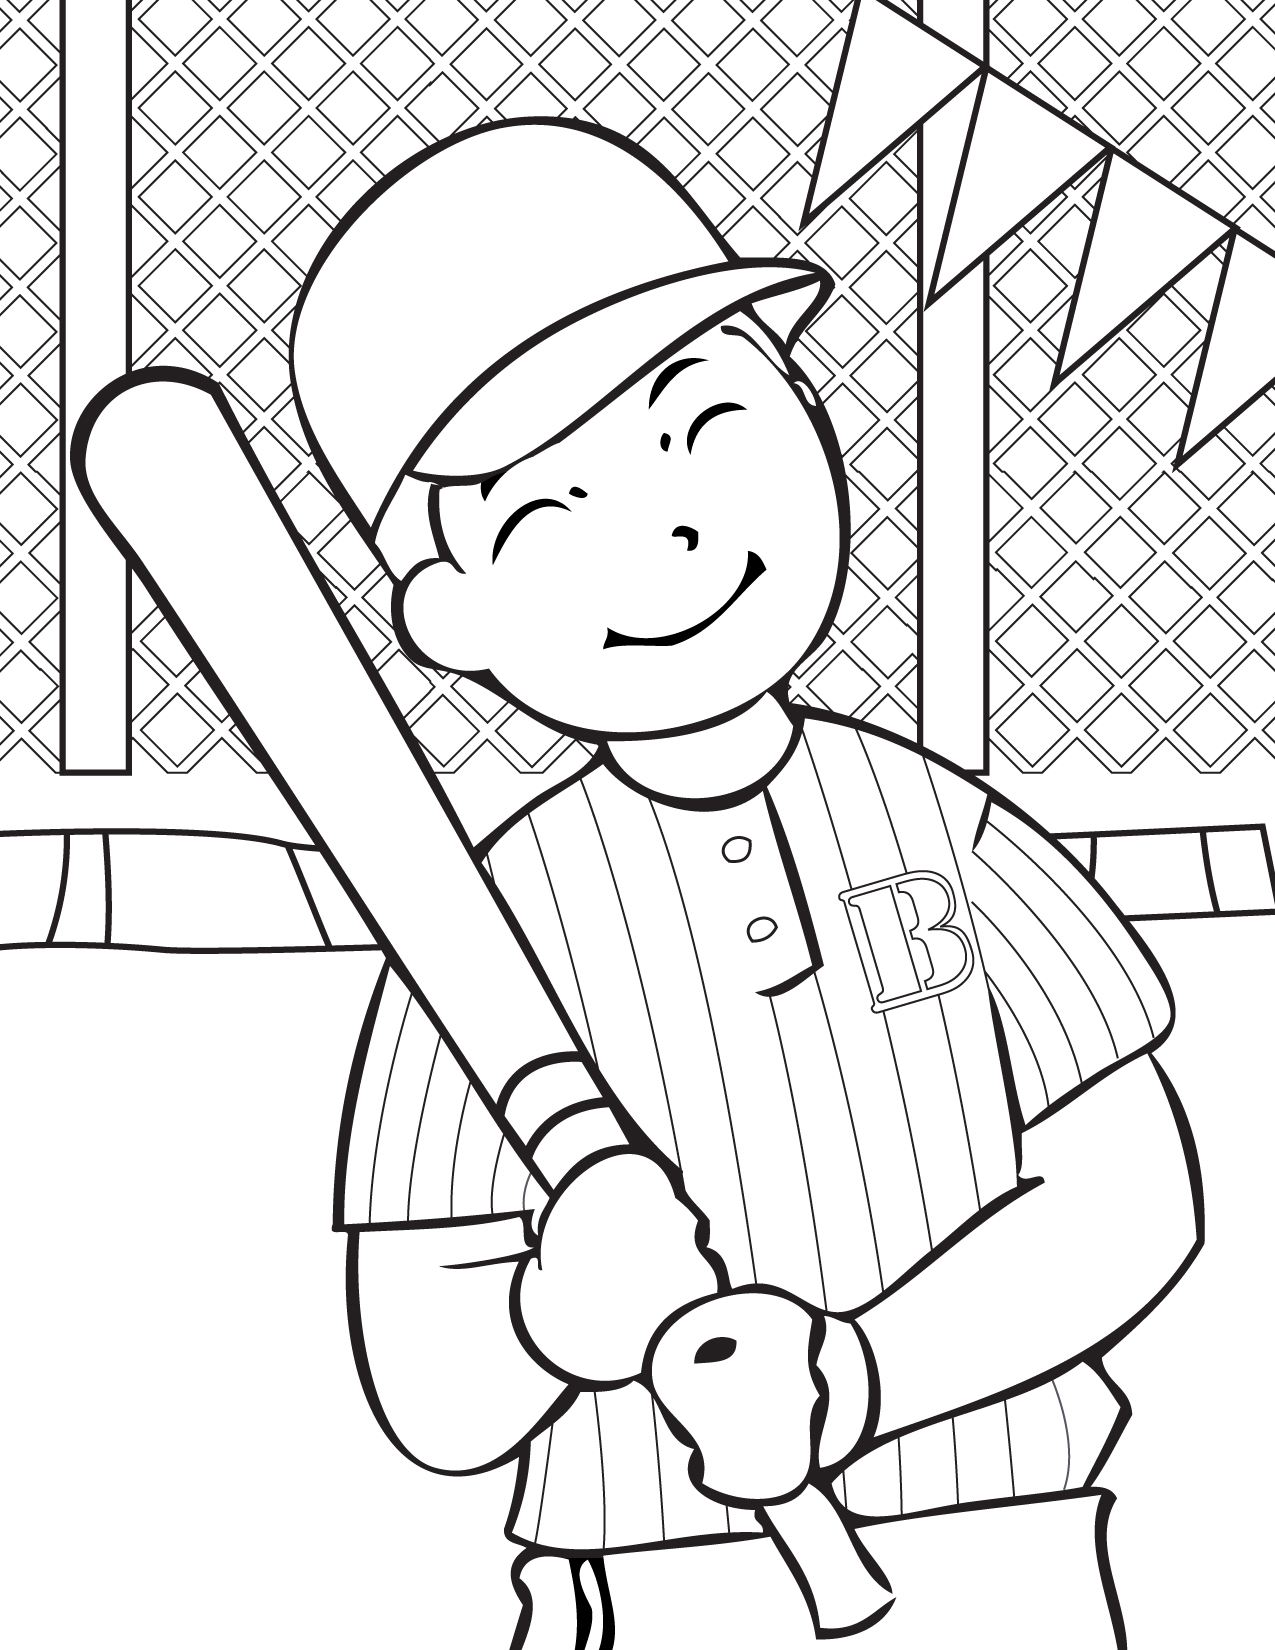 Printable coloring pages sports - Print This Page Favorite Sports Coloring Pages Coloring Pages Baseball